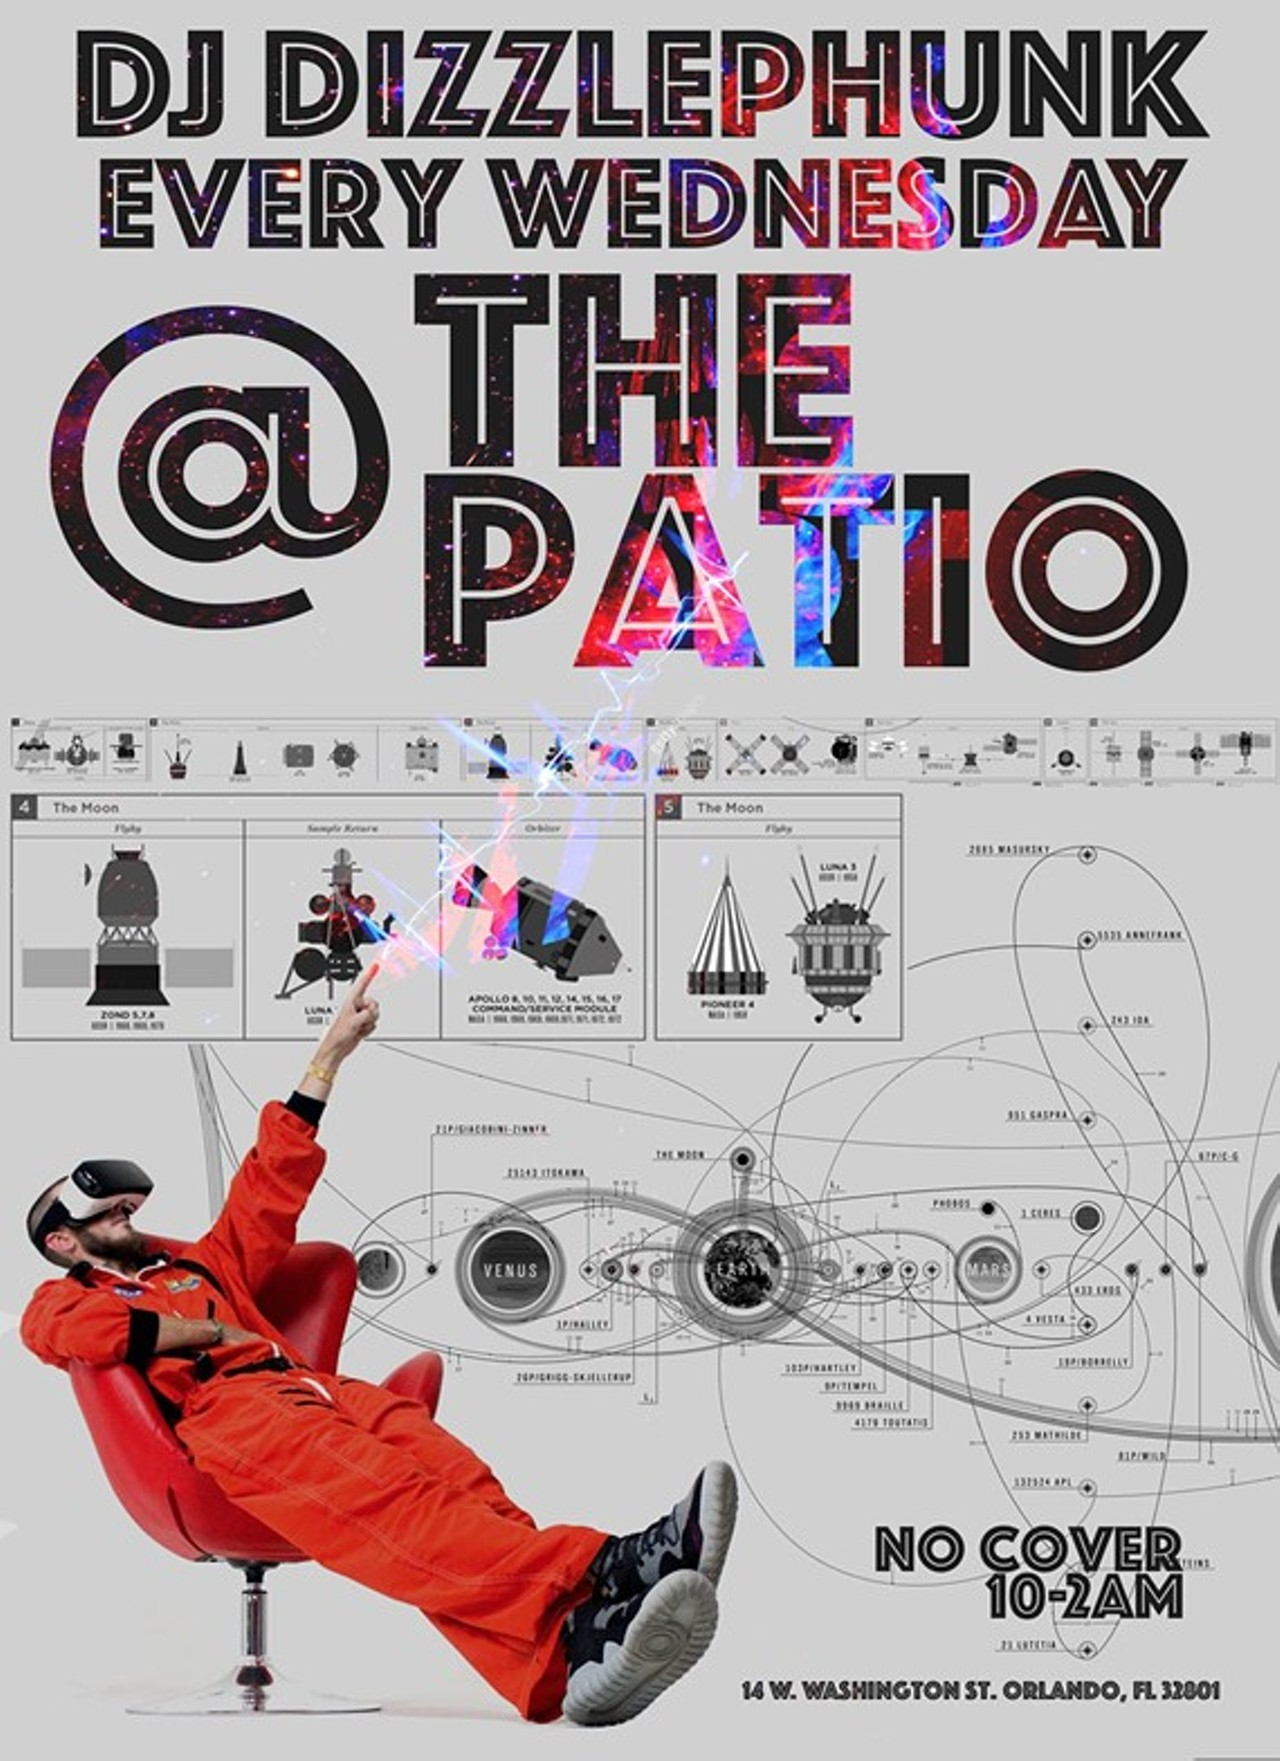 Dizzlephunk s Take Over The Patio Clubs Lounges